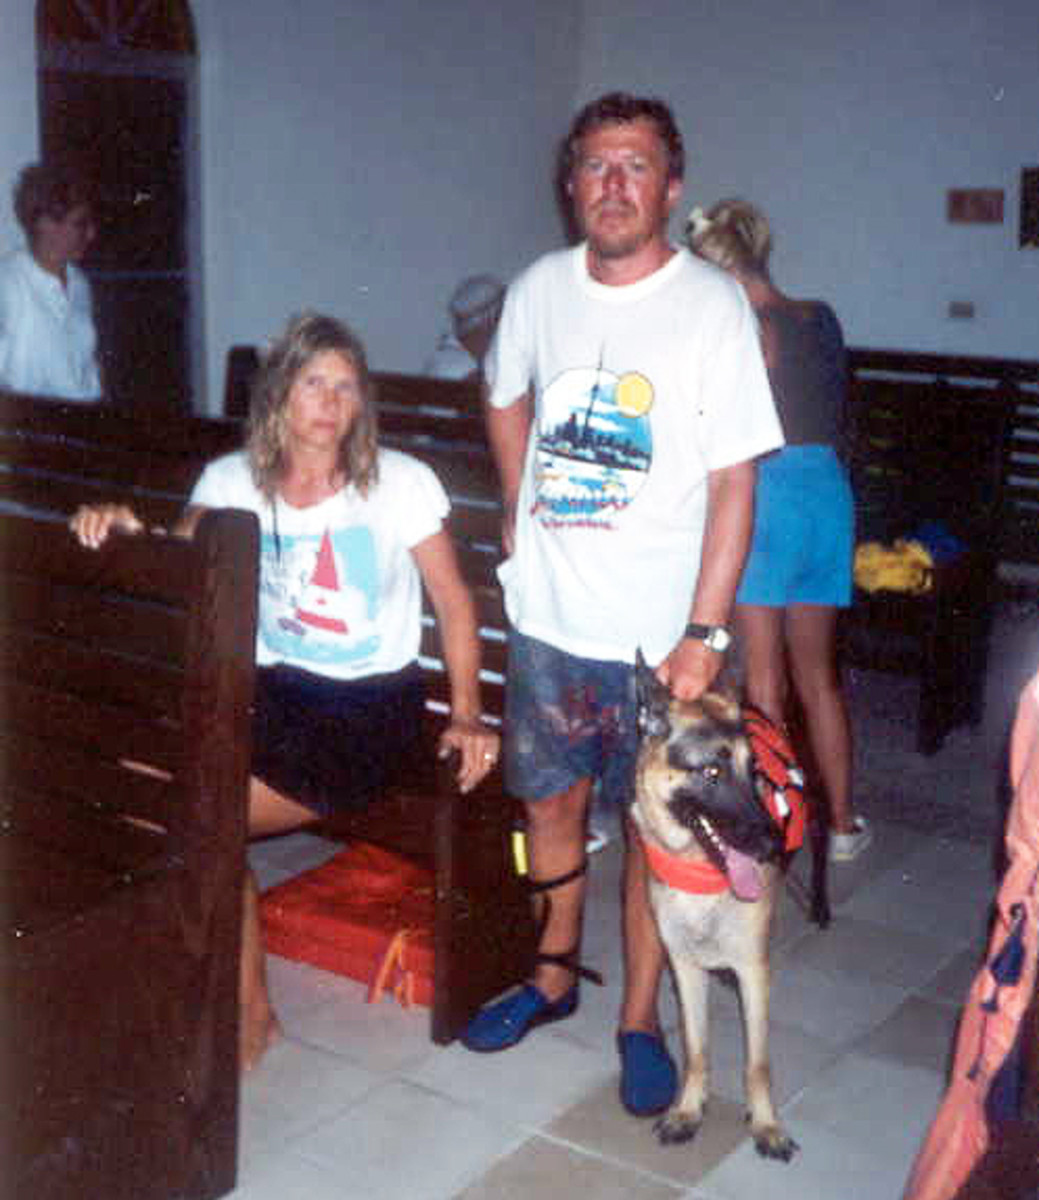 The author with wife Wendy and Ku the dog with others inside the chapel.